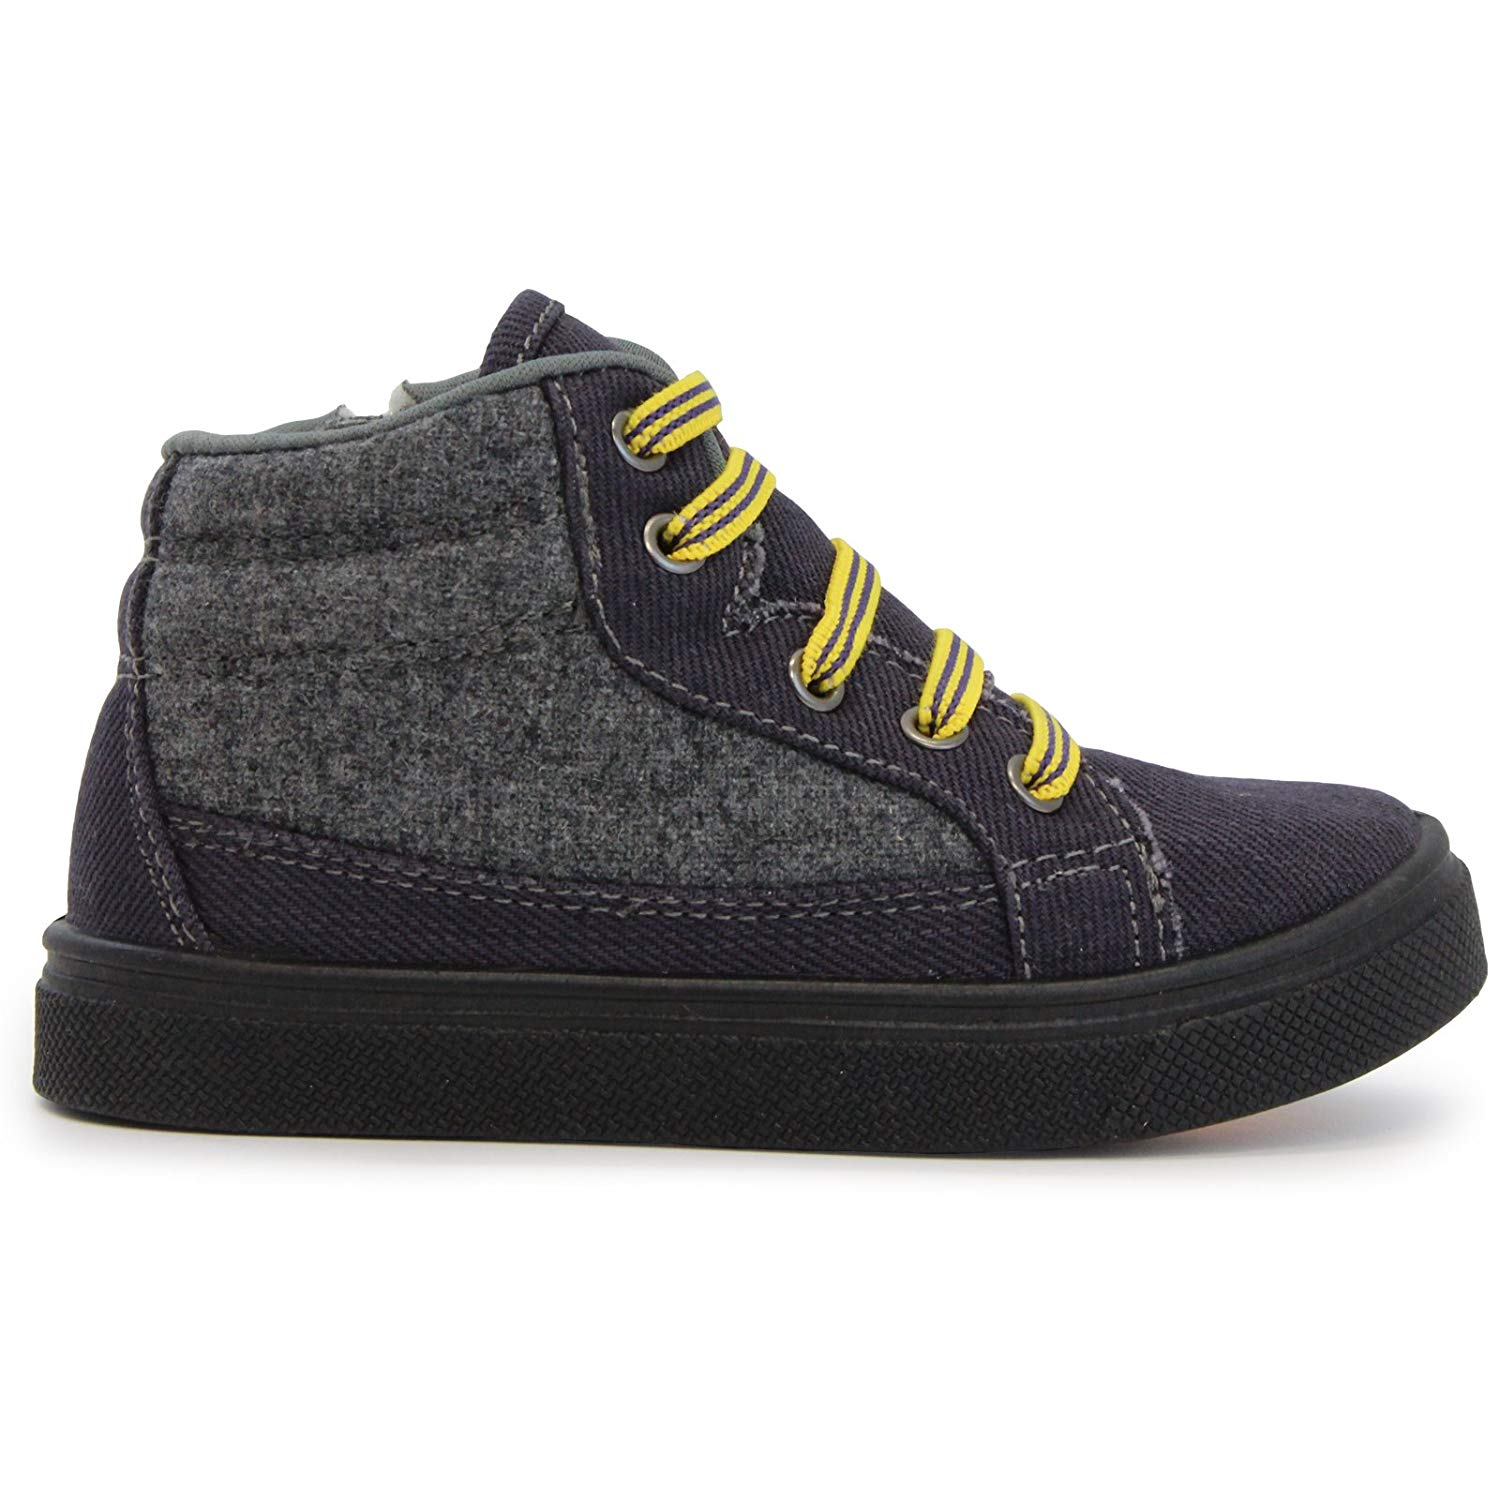 97f6ca9769c4a Get Quotations · Oomphies Tyler Elastic Stretch Lace Navy Grey High-Top Shoe